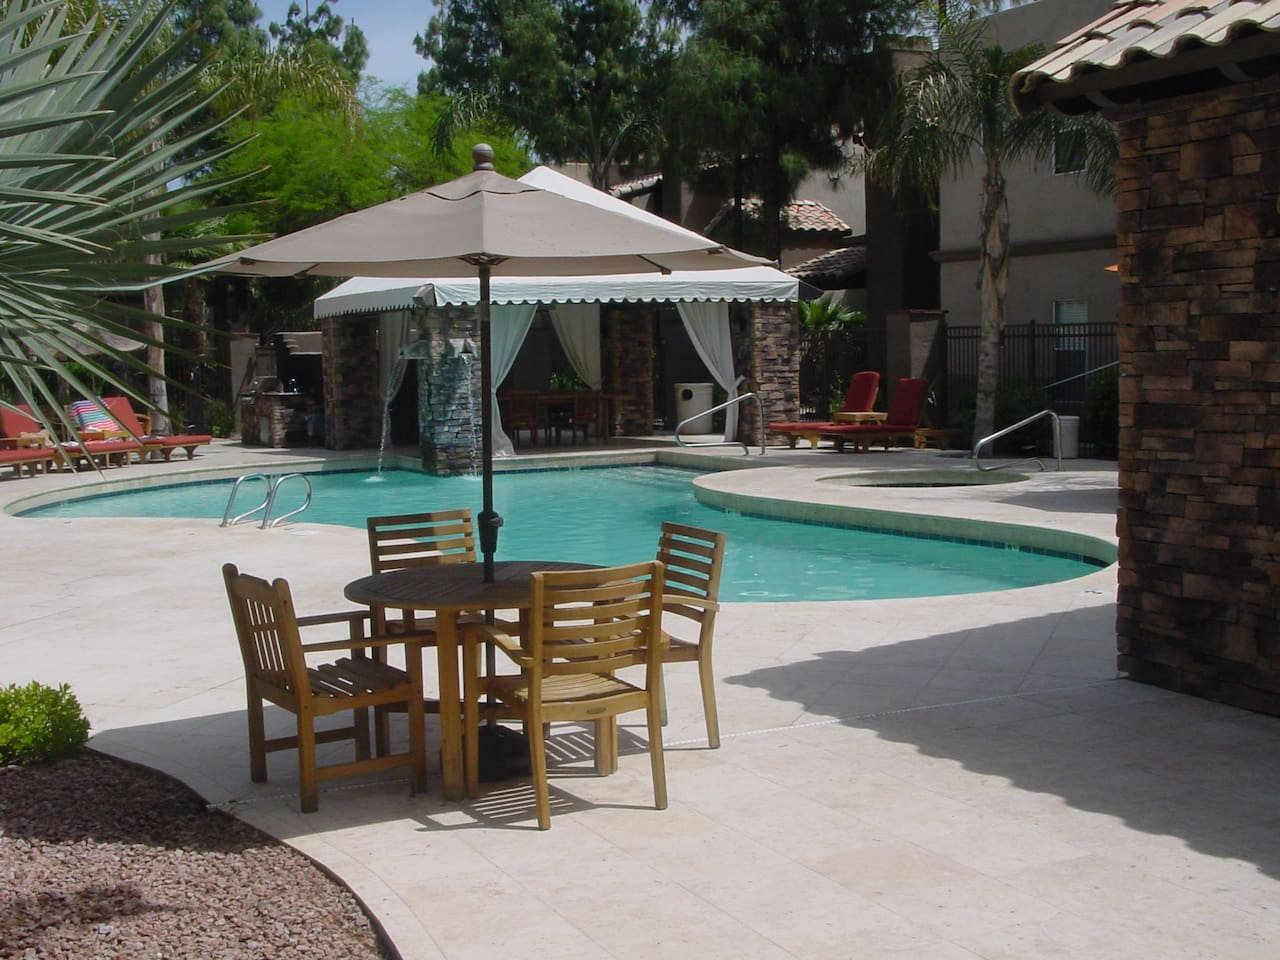 North Scottsdale Condo overlooking lush green and palm tree including swimming pool.